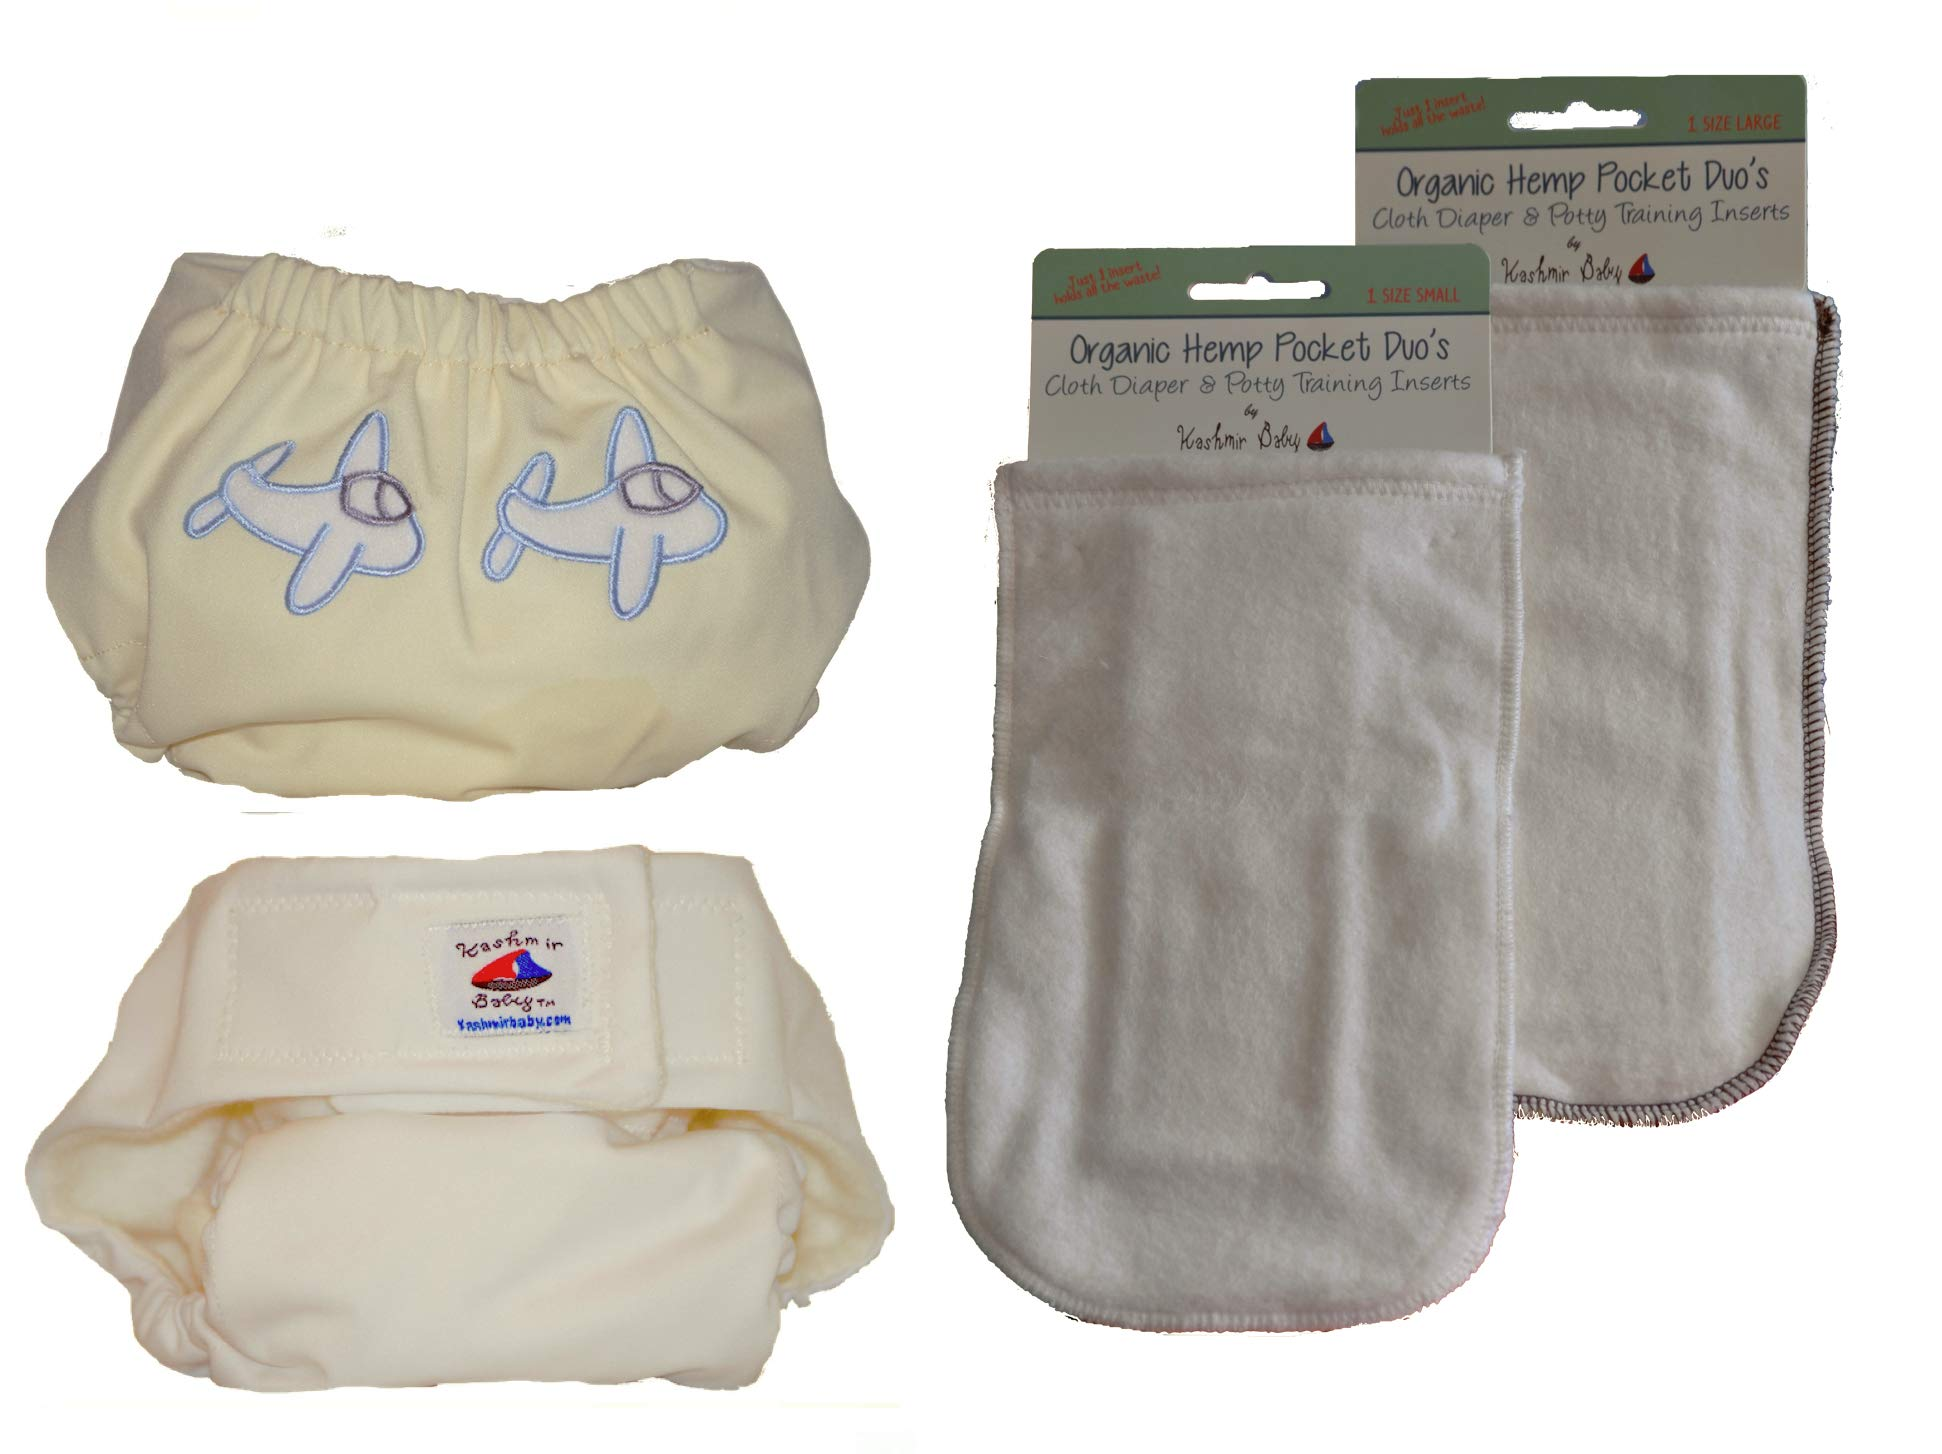 Kashmir Baby 2 Hemp/Organic One Size Diapers, 2 Hemp Inserts (Captain) by Kashmir Baby